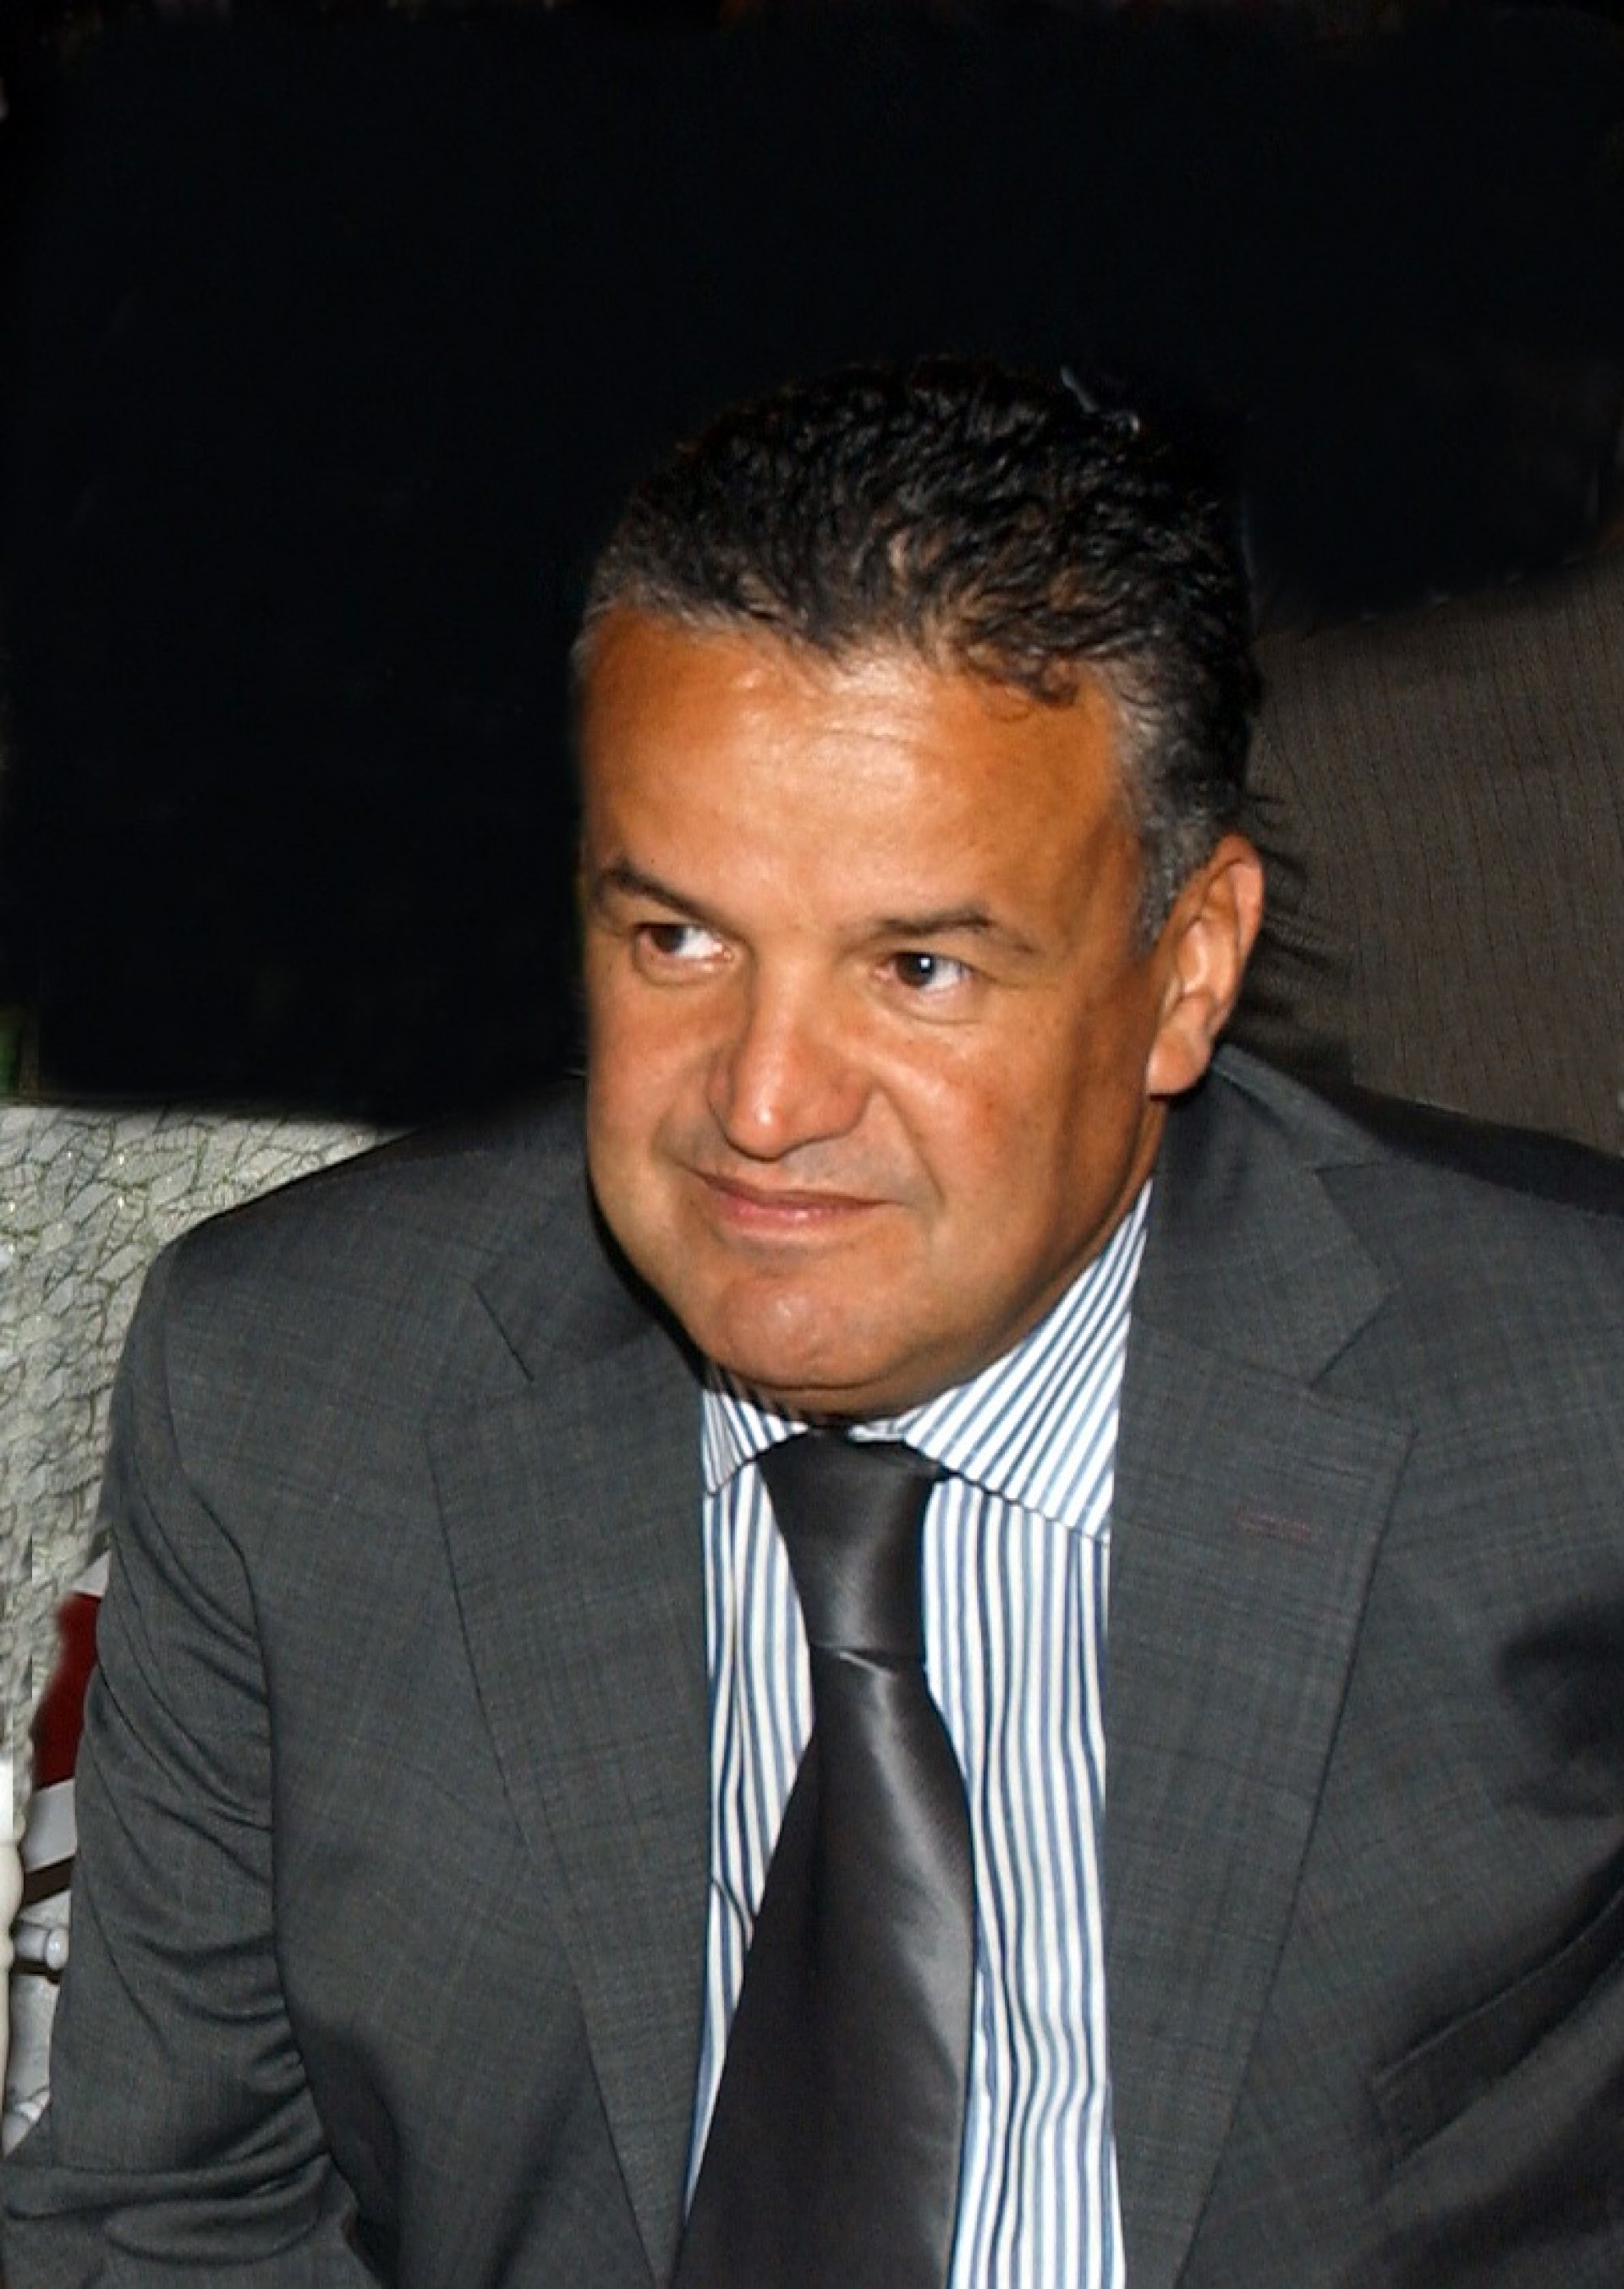 Noureddine Ouazzani